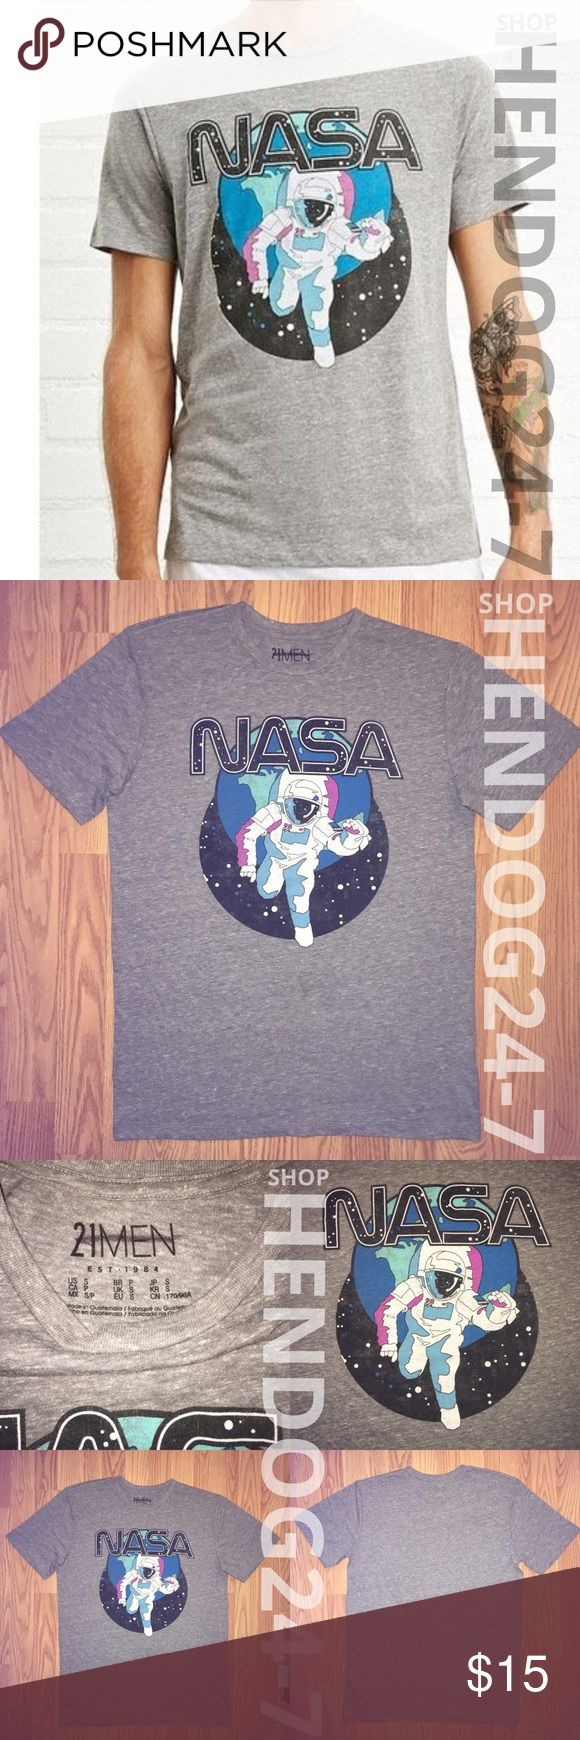 FOREVER 21 MEN'S NASA GRAPHIC SHORT SLEEVE TEE NEW WITHOUT TAGS • NEVER WORN • OVERSTOCK ITEM, LINE THROUGH INSIDE BRAND LABEL/TAG   FOREVER 21 MEN'S NASA GRAPHIC TEE - HEATHER GREY TEE - CREW NECK - SHORT SLEEVES - FINISHED HEMS - 50% POLYESTER, 37% COTTON, 13% RAYON - WASH COLD - MADE IN GUATEMALA Forever 21 Shirts Tees - Short Sleeve